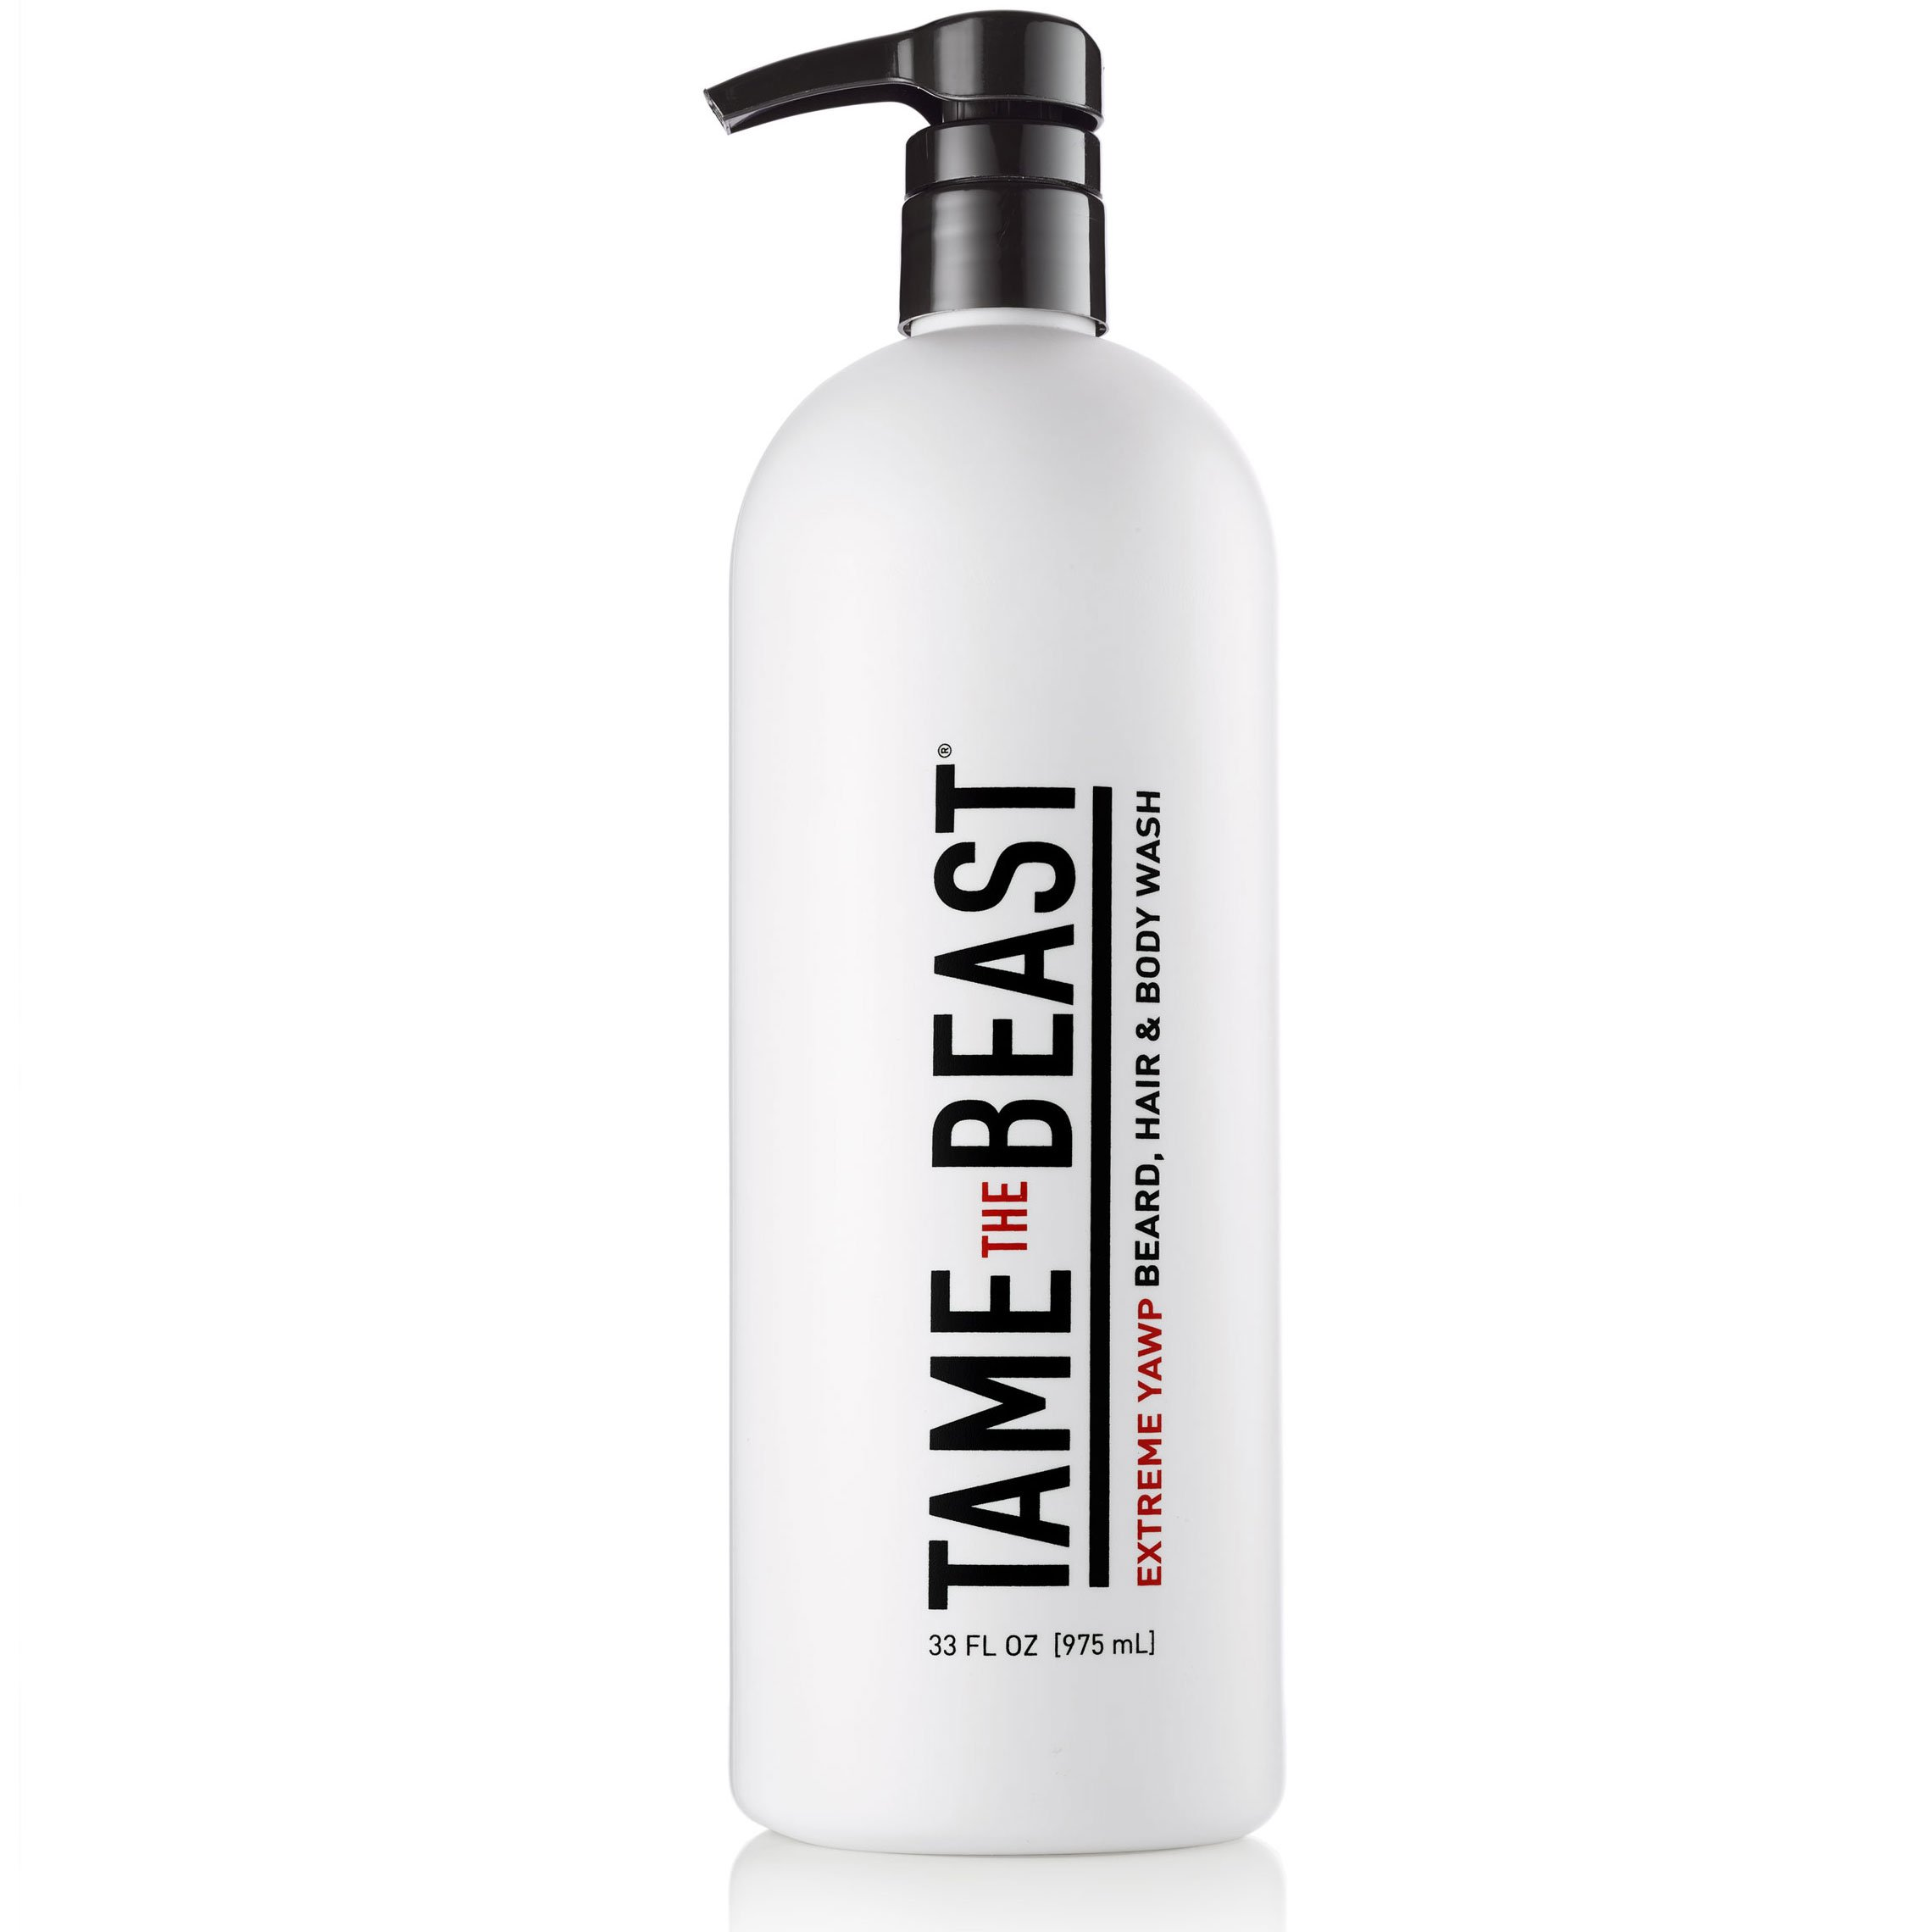 Extreme Yawp All-in-One Men's Body Wash by Tame the Beast - 33 ounce Large Liter Pump 3-in-1 Hair, Beard & Body Shampoo - Eucalyptus, Menthol, Caffeine, Green Tea, Vitamins A C & E